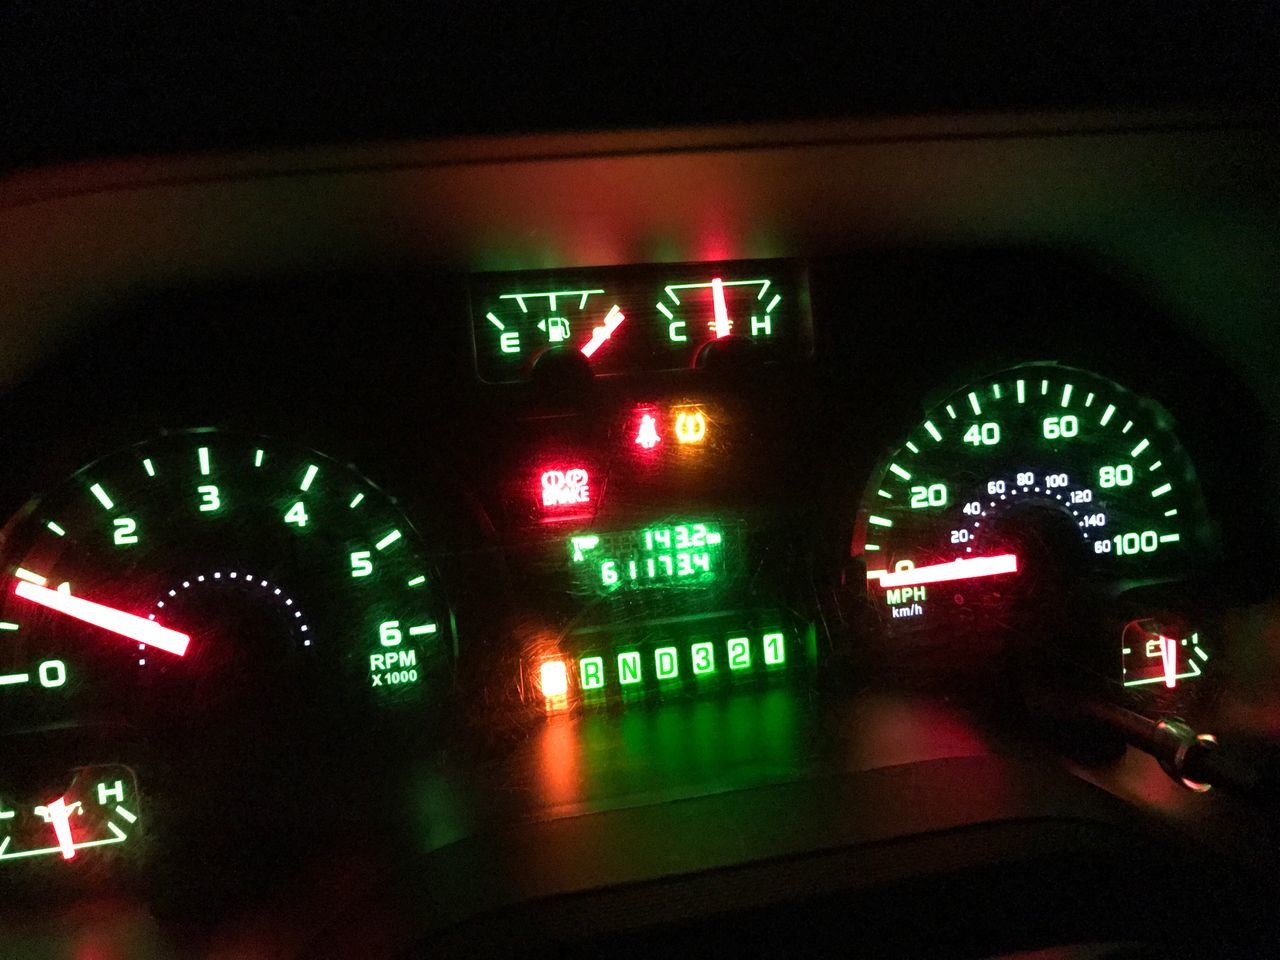 Illuminated Transportation Dashboard Number Car Interior Vehicle Interior Land Vehicle Mode Of Transport Car Speedometer Close-up Gauge Communication No People Meter - Instrument Of Measurement Night Control Panel Text Indoors  Lieblingsteil